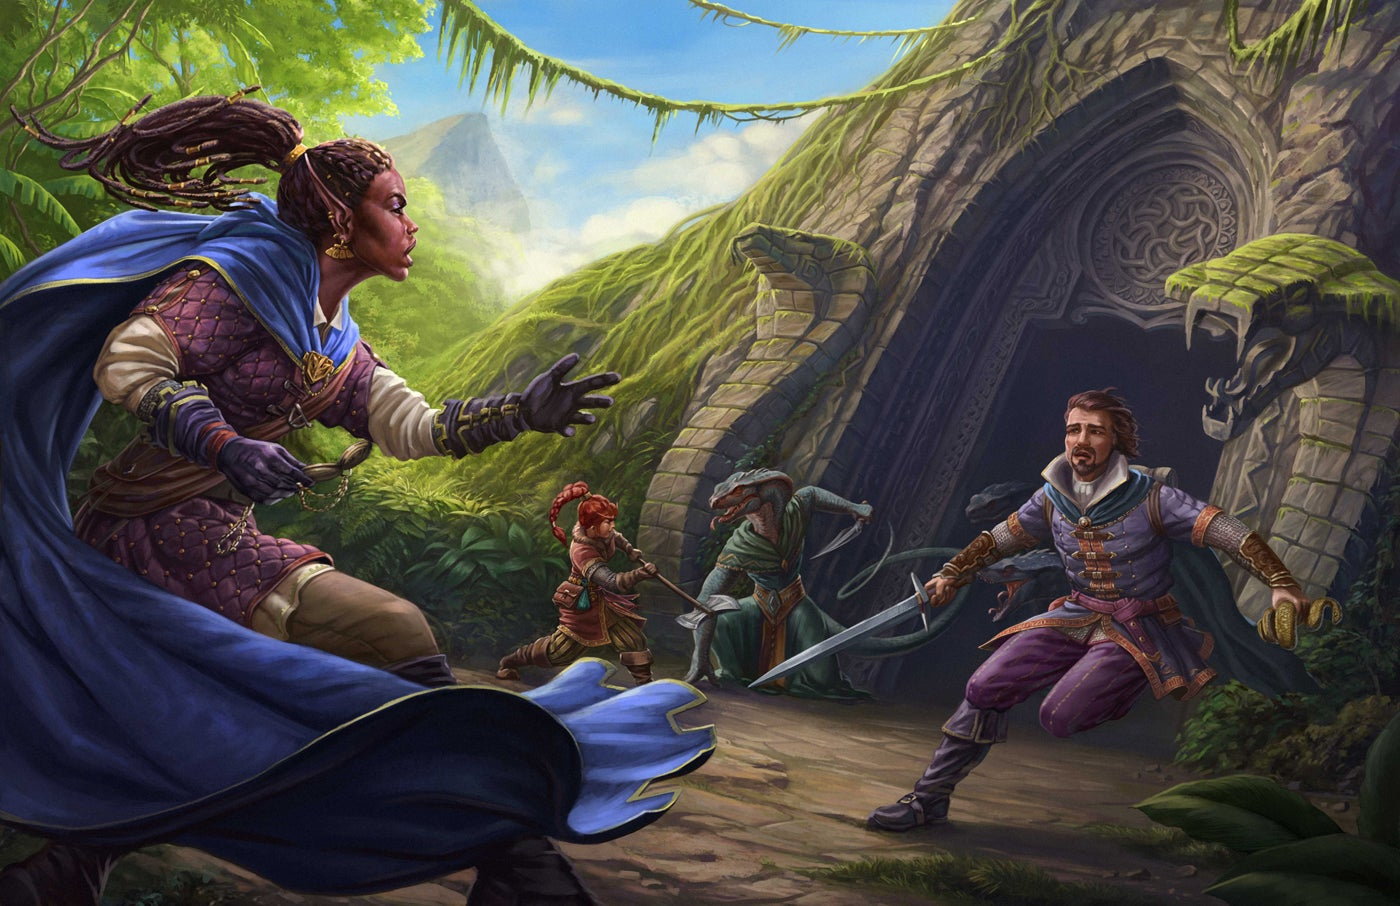 A dark-skinned elven woman, a finely-dressed human man, and a red-haired female dwarf fight a robed snake-man near the door to a ruined jungle temple.